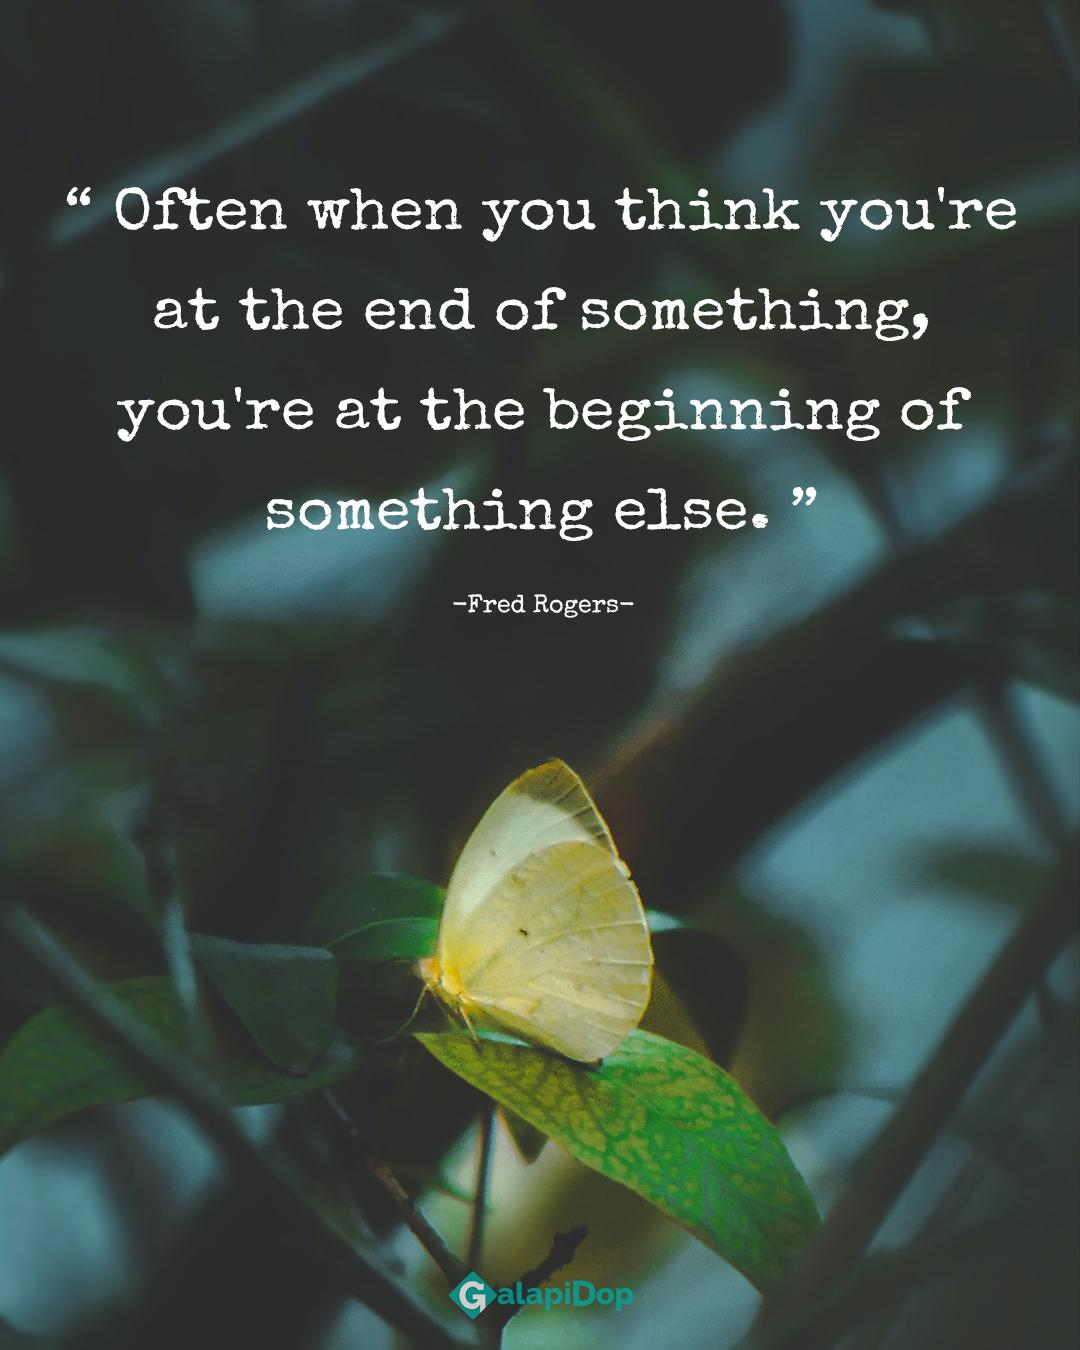 Often when you think you're at the end of something, you're at the beginning of something else. -FRED ROGERS-l1080x1350]